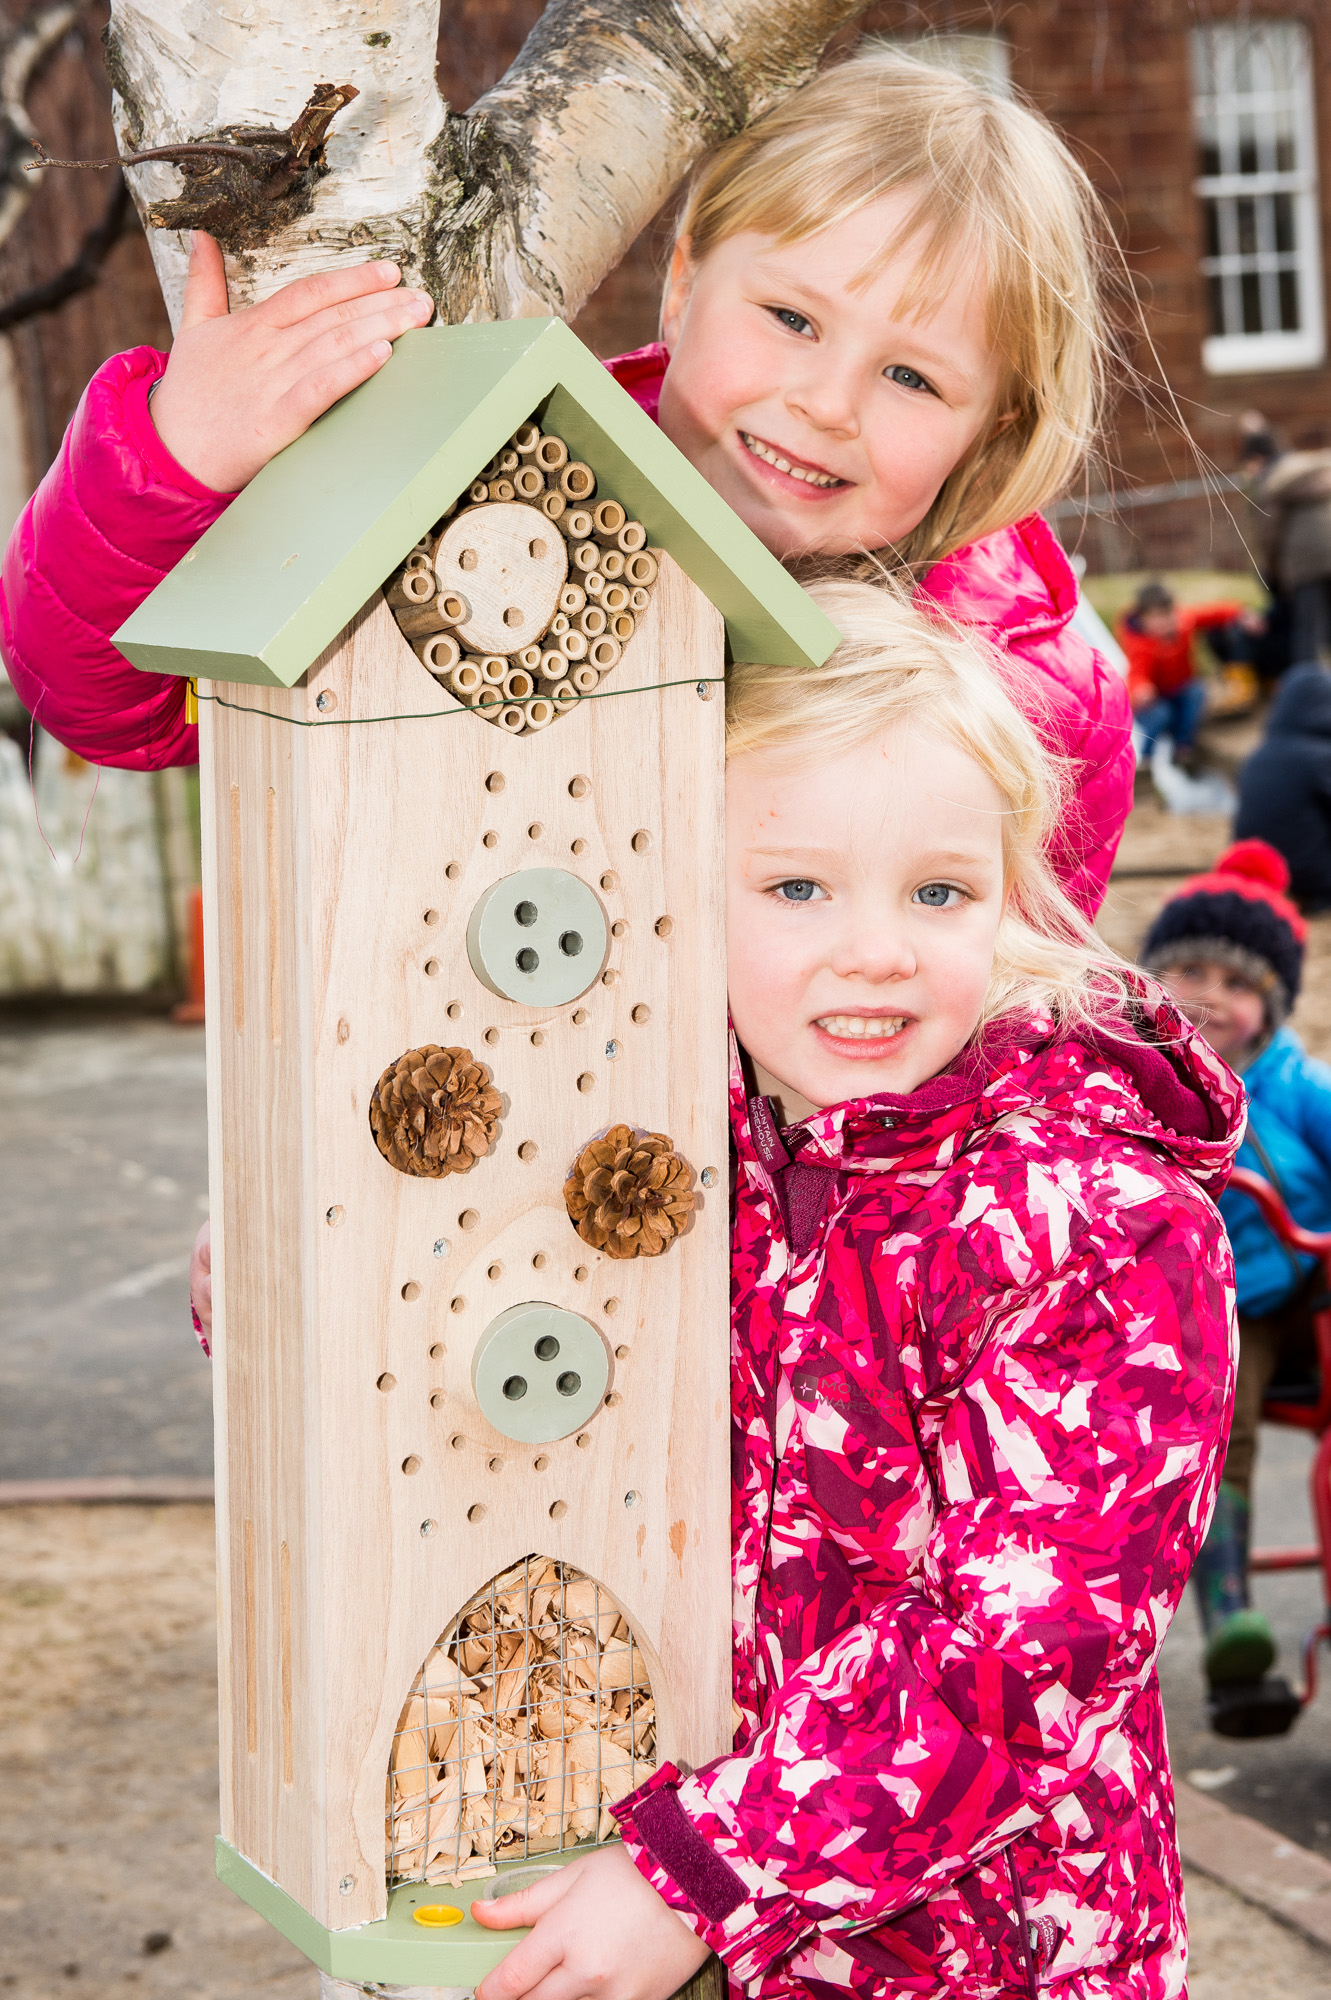 A photo of two young girls posing next to an insect house for Photography PR